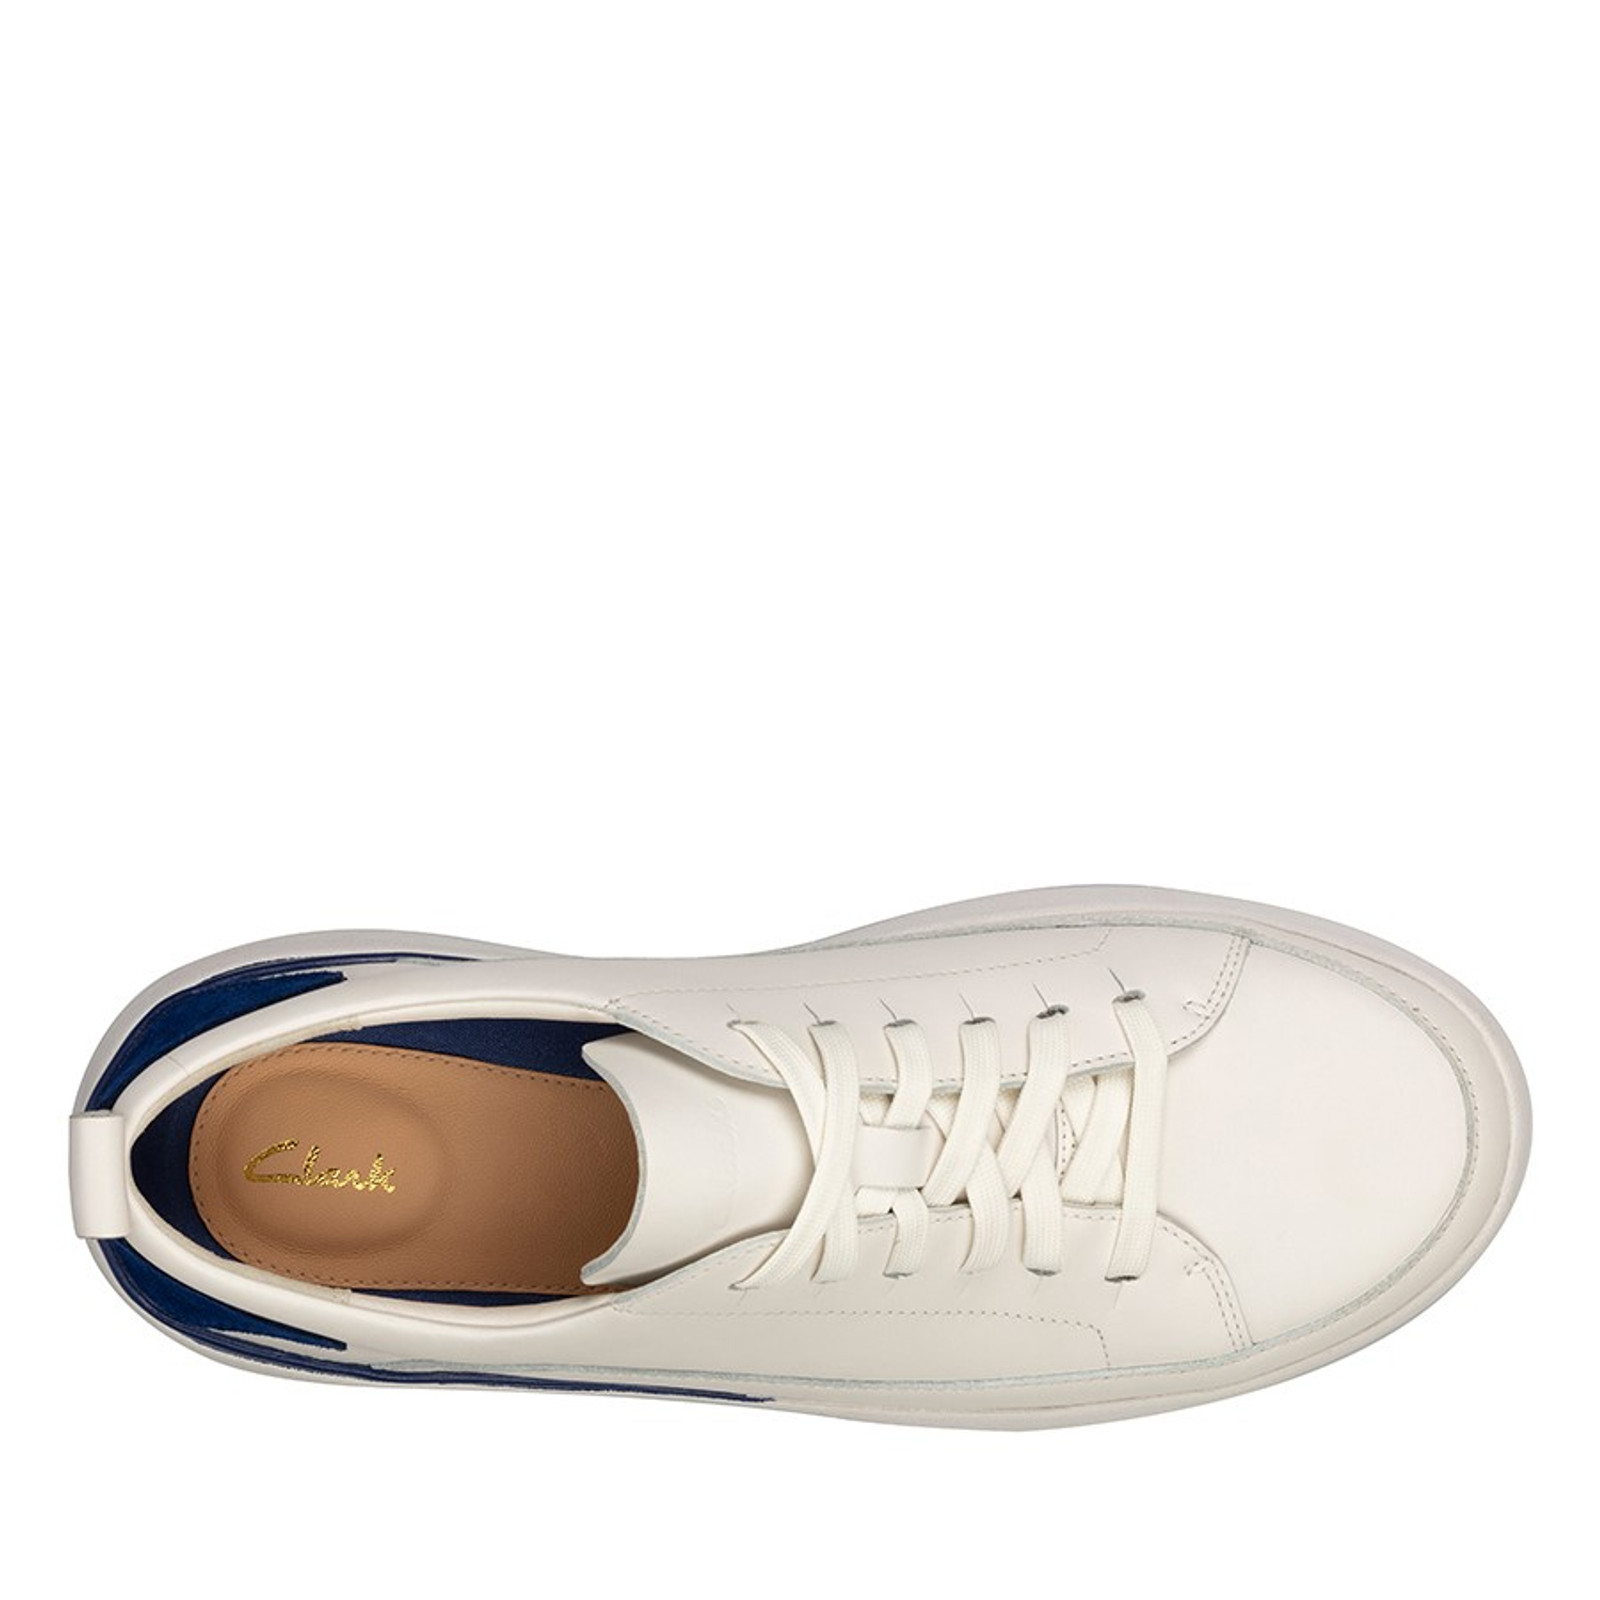 Clarks Womens TRI FLASH LACE White/Blue